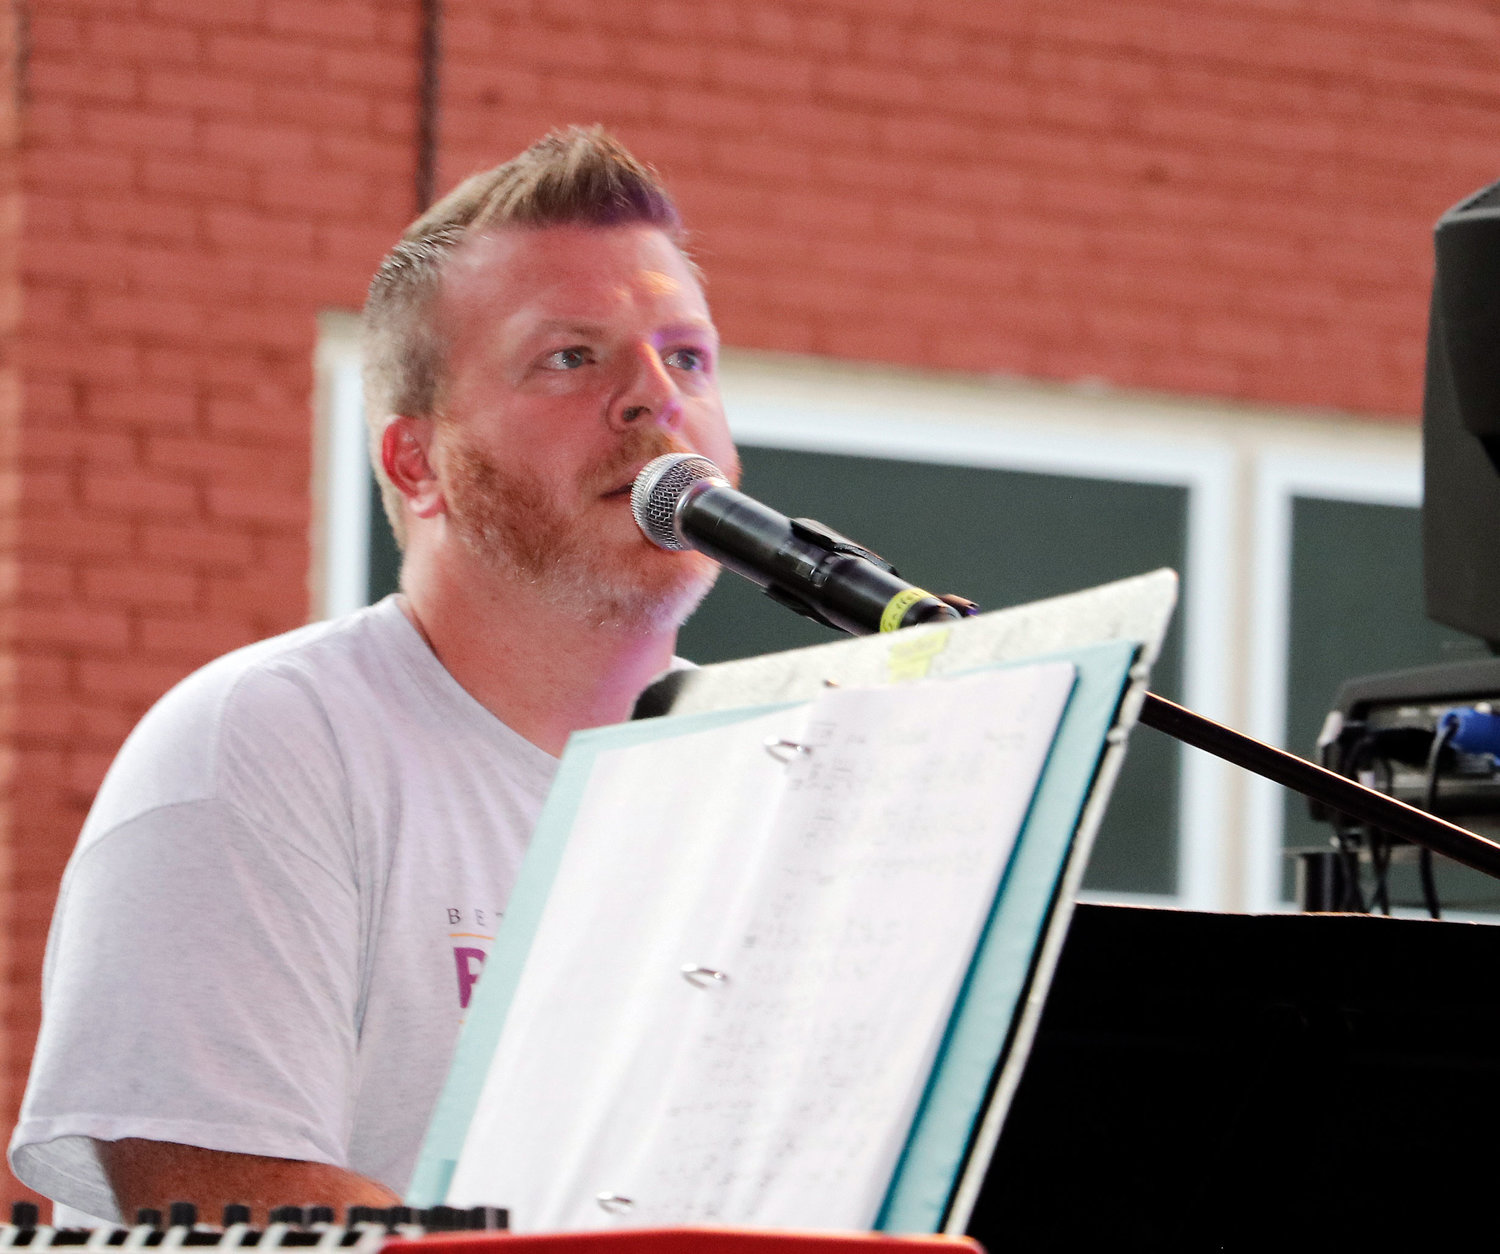 Matthew Holt, executive director of Renaissance, was right at home on the keyboard.